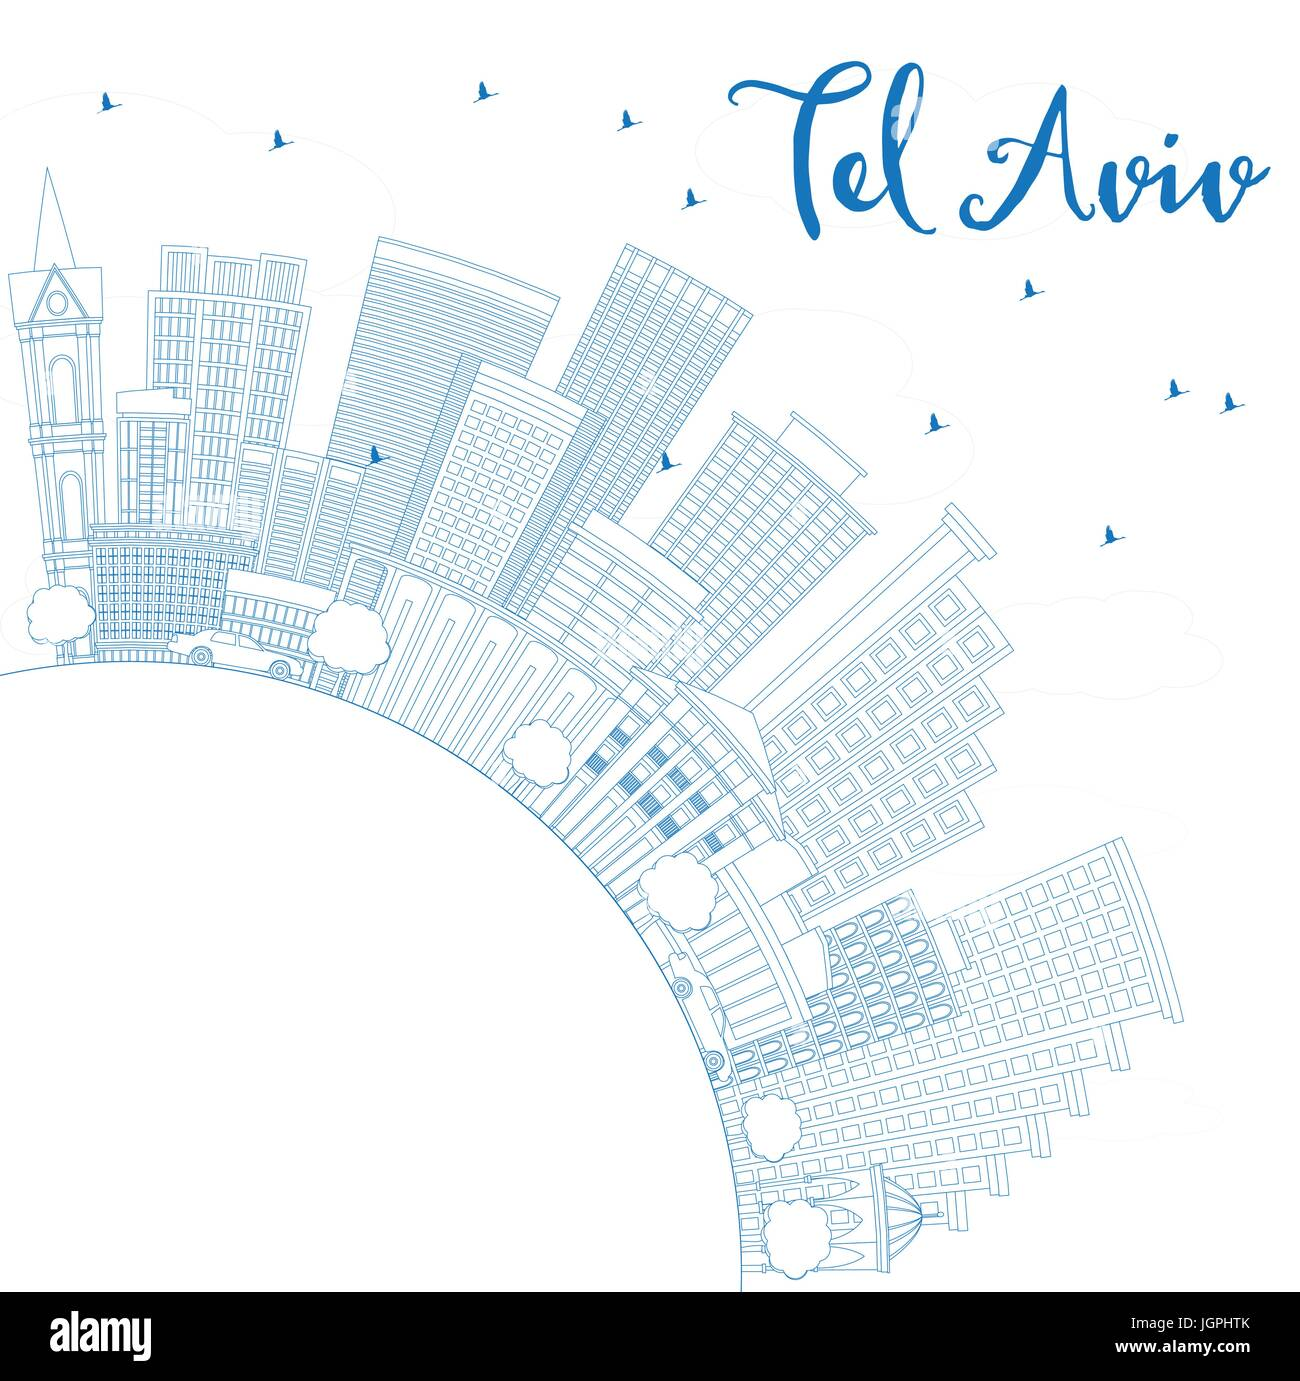 Outline Tel Aviv Skyline with Blue Buildings and Copy Space. Vector Illustration. Business Travel and Tourism Concept - Stock Image